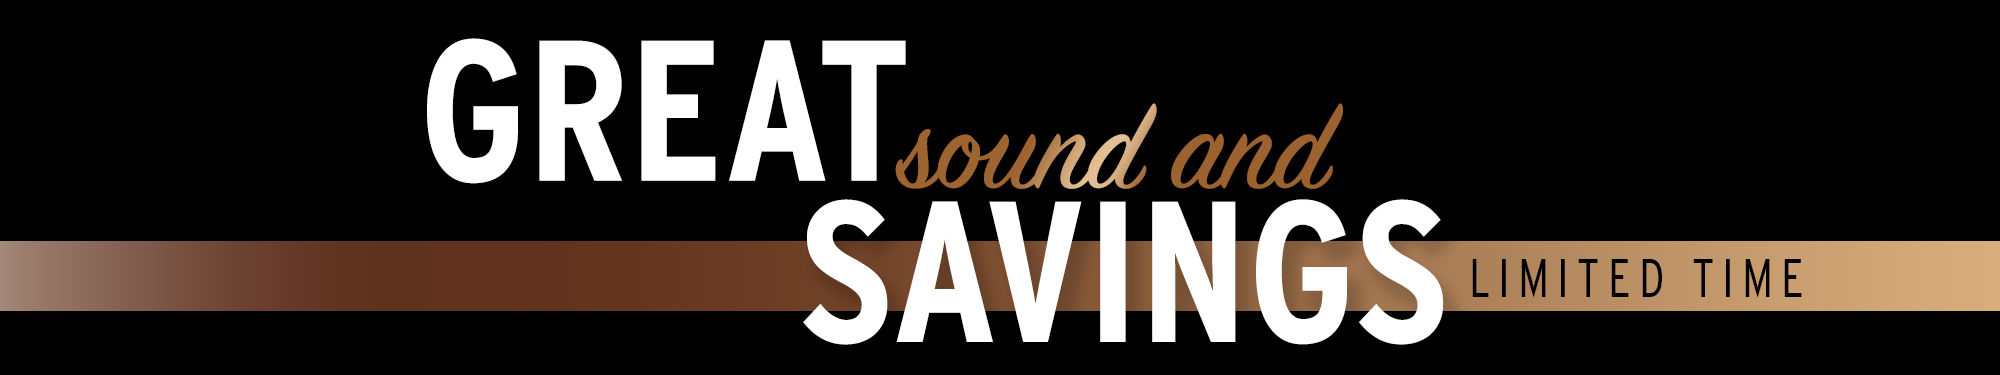 Great Sound And Savings